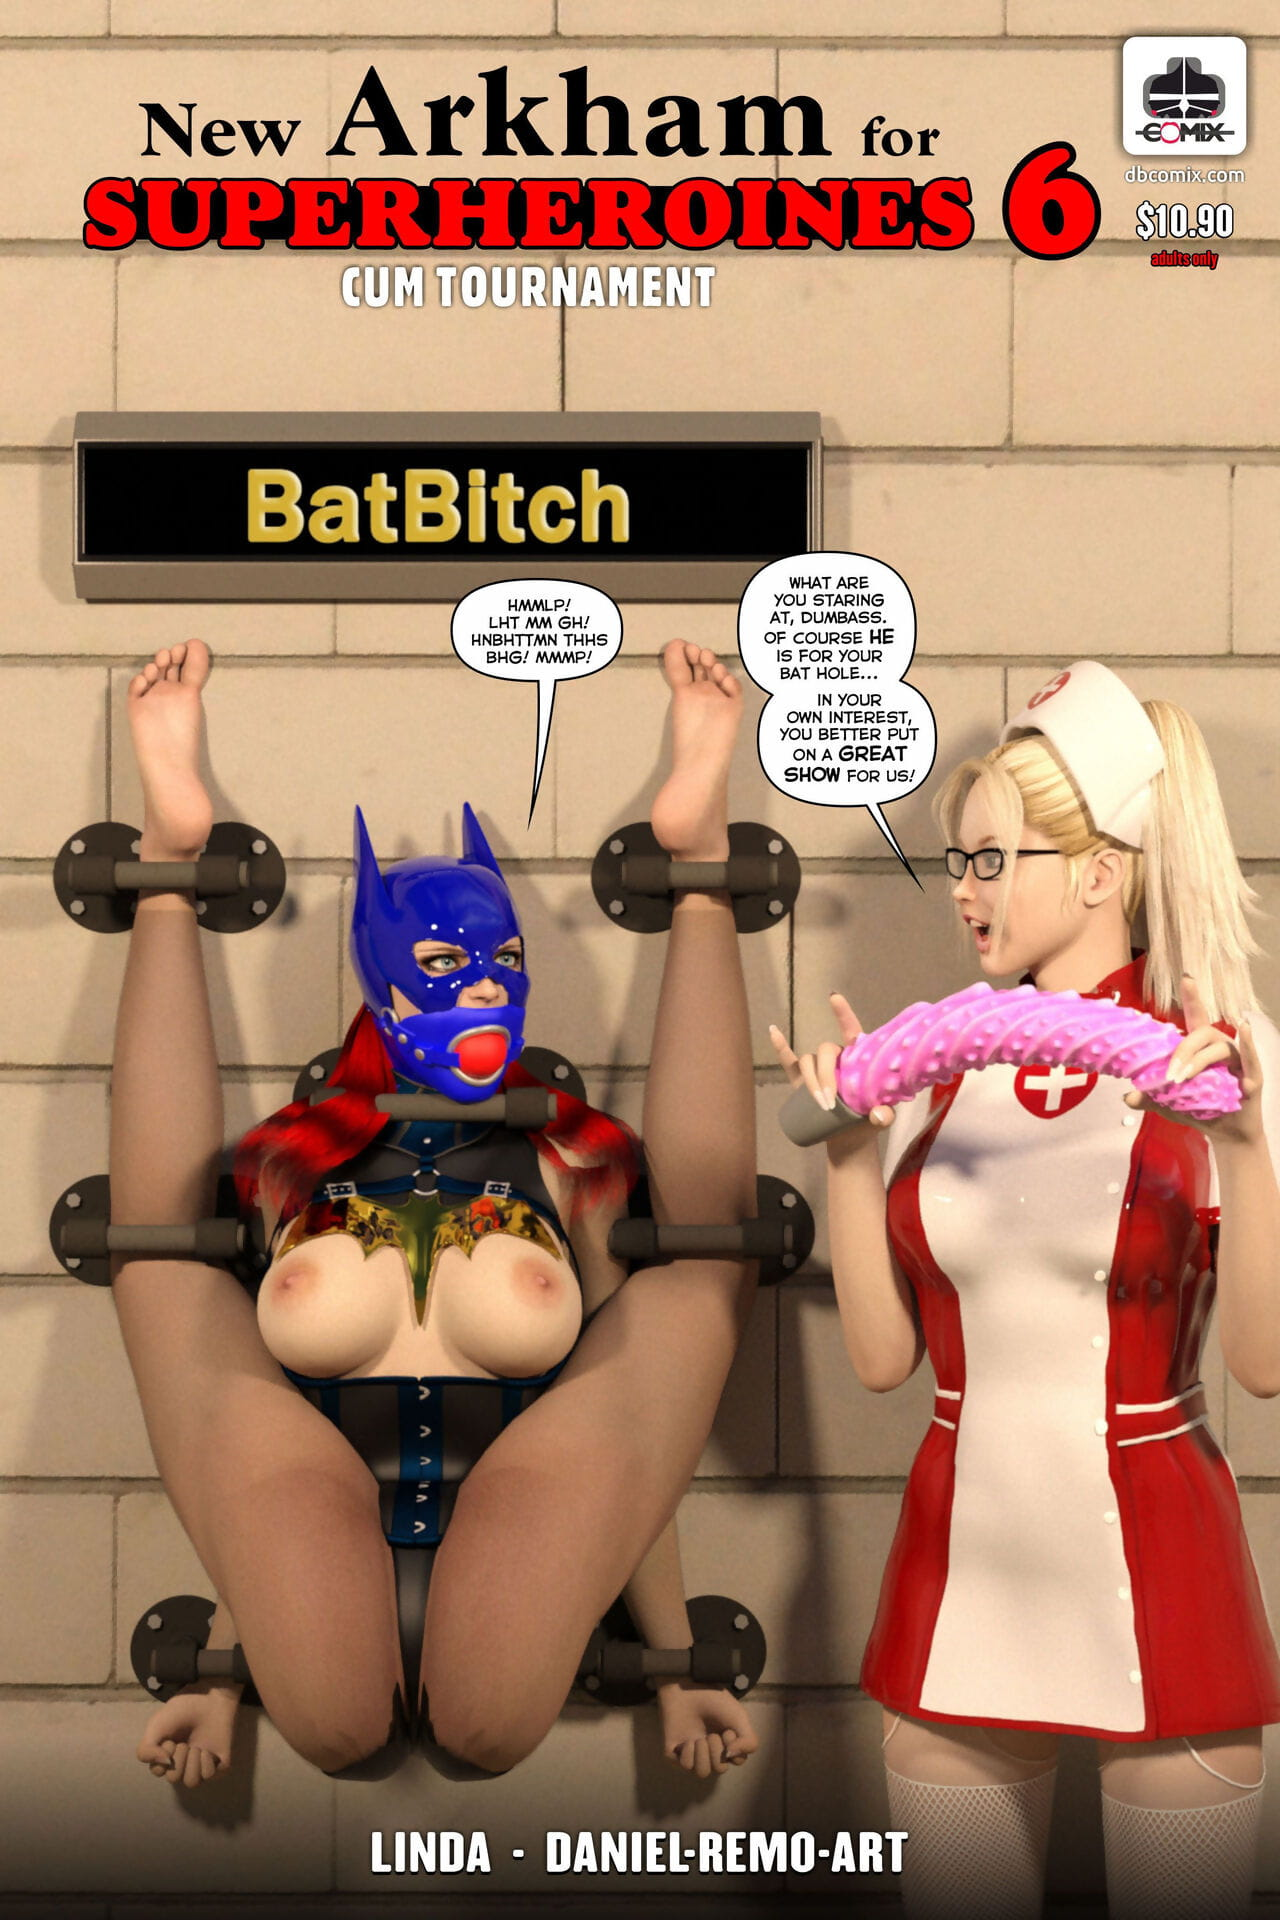 DBComix Extremist Arkham be required of Superheroines 6 - Cum Striving